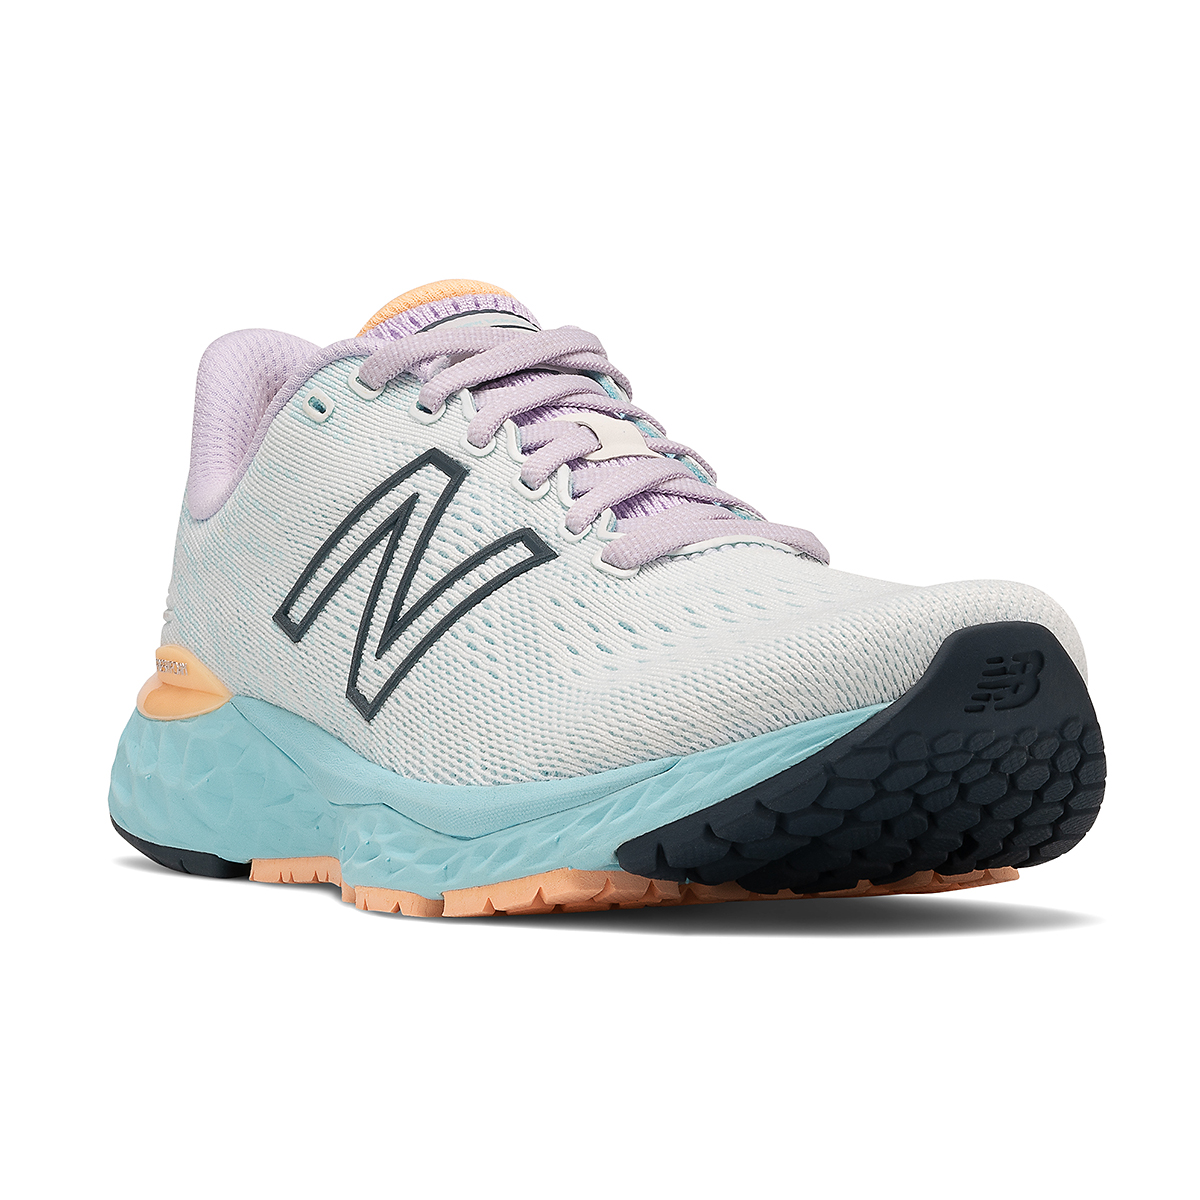 Women's New Balance 880V11 Running Shoe - Color: White/Blue Chill - Size: 5 - Width: Narrow, White/Blue Chill, large, image 3